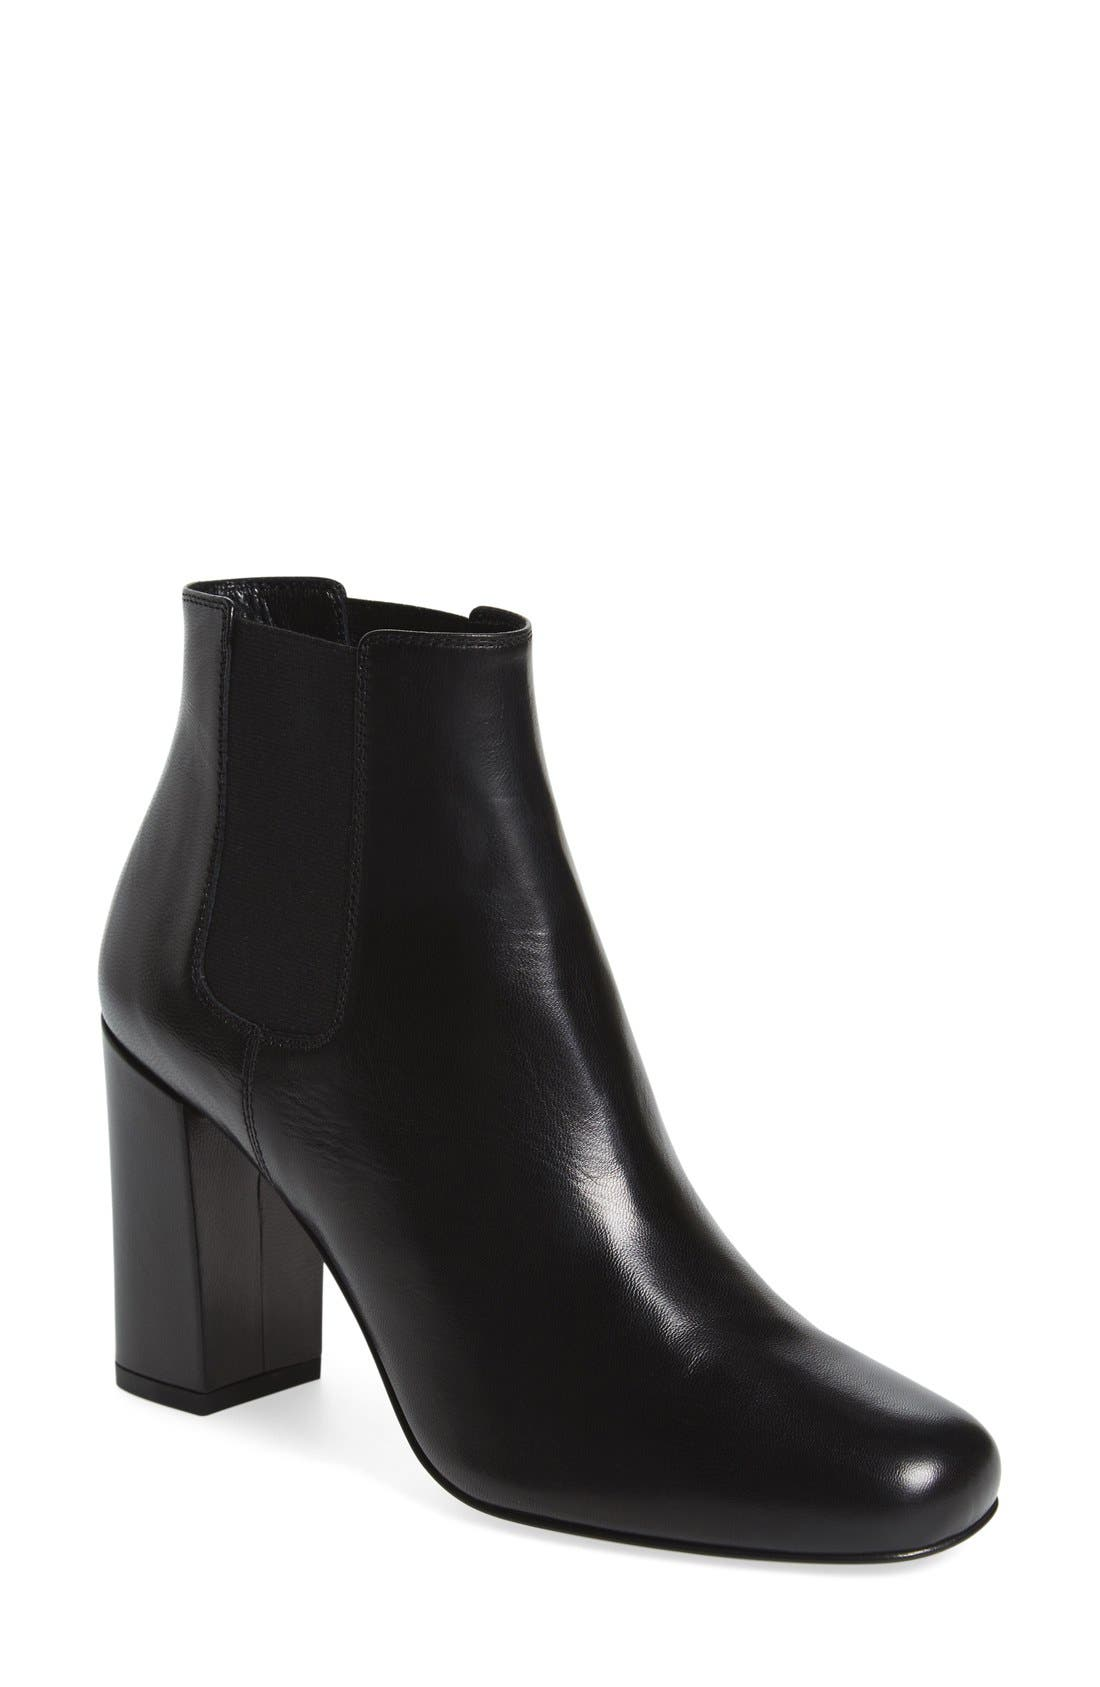 'Babies' Block Heel Chelsea Boot,                             Main thumbnail 1, color,                             Black Leather